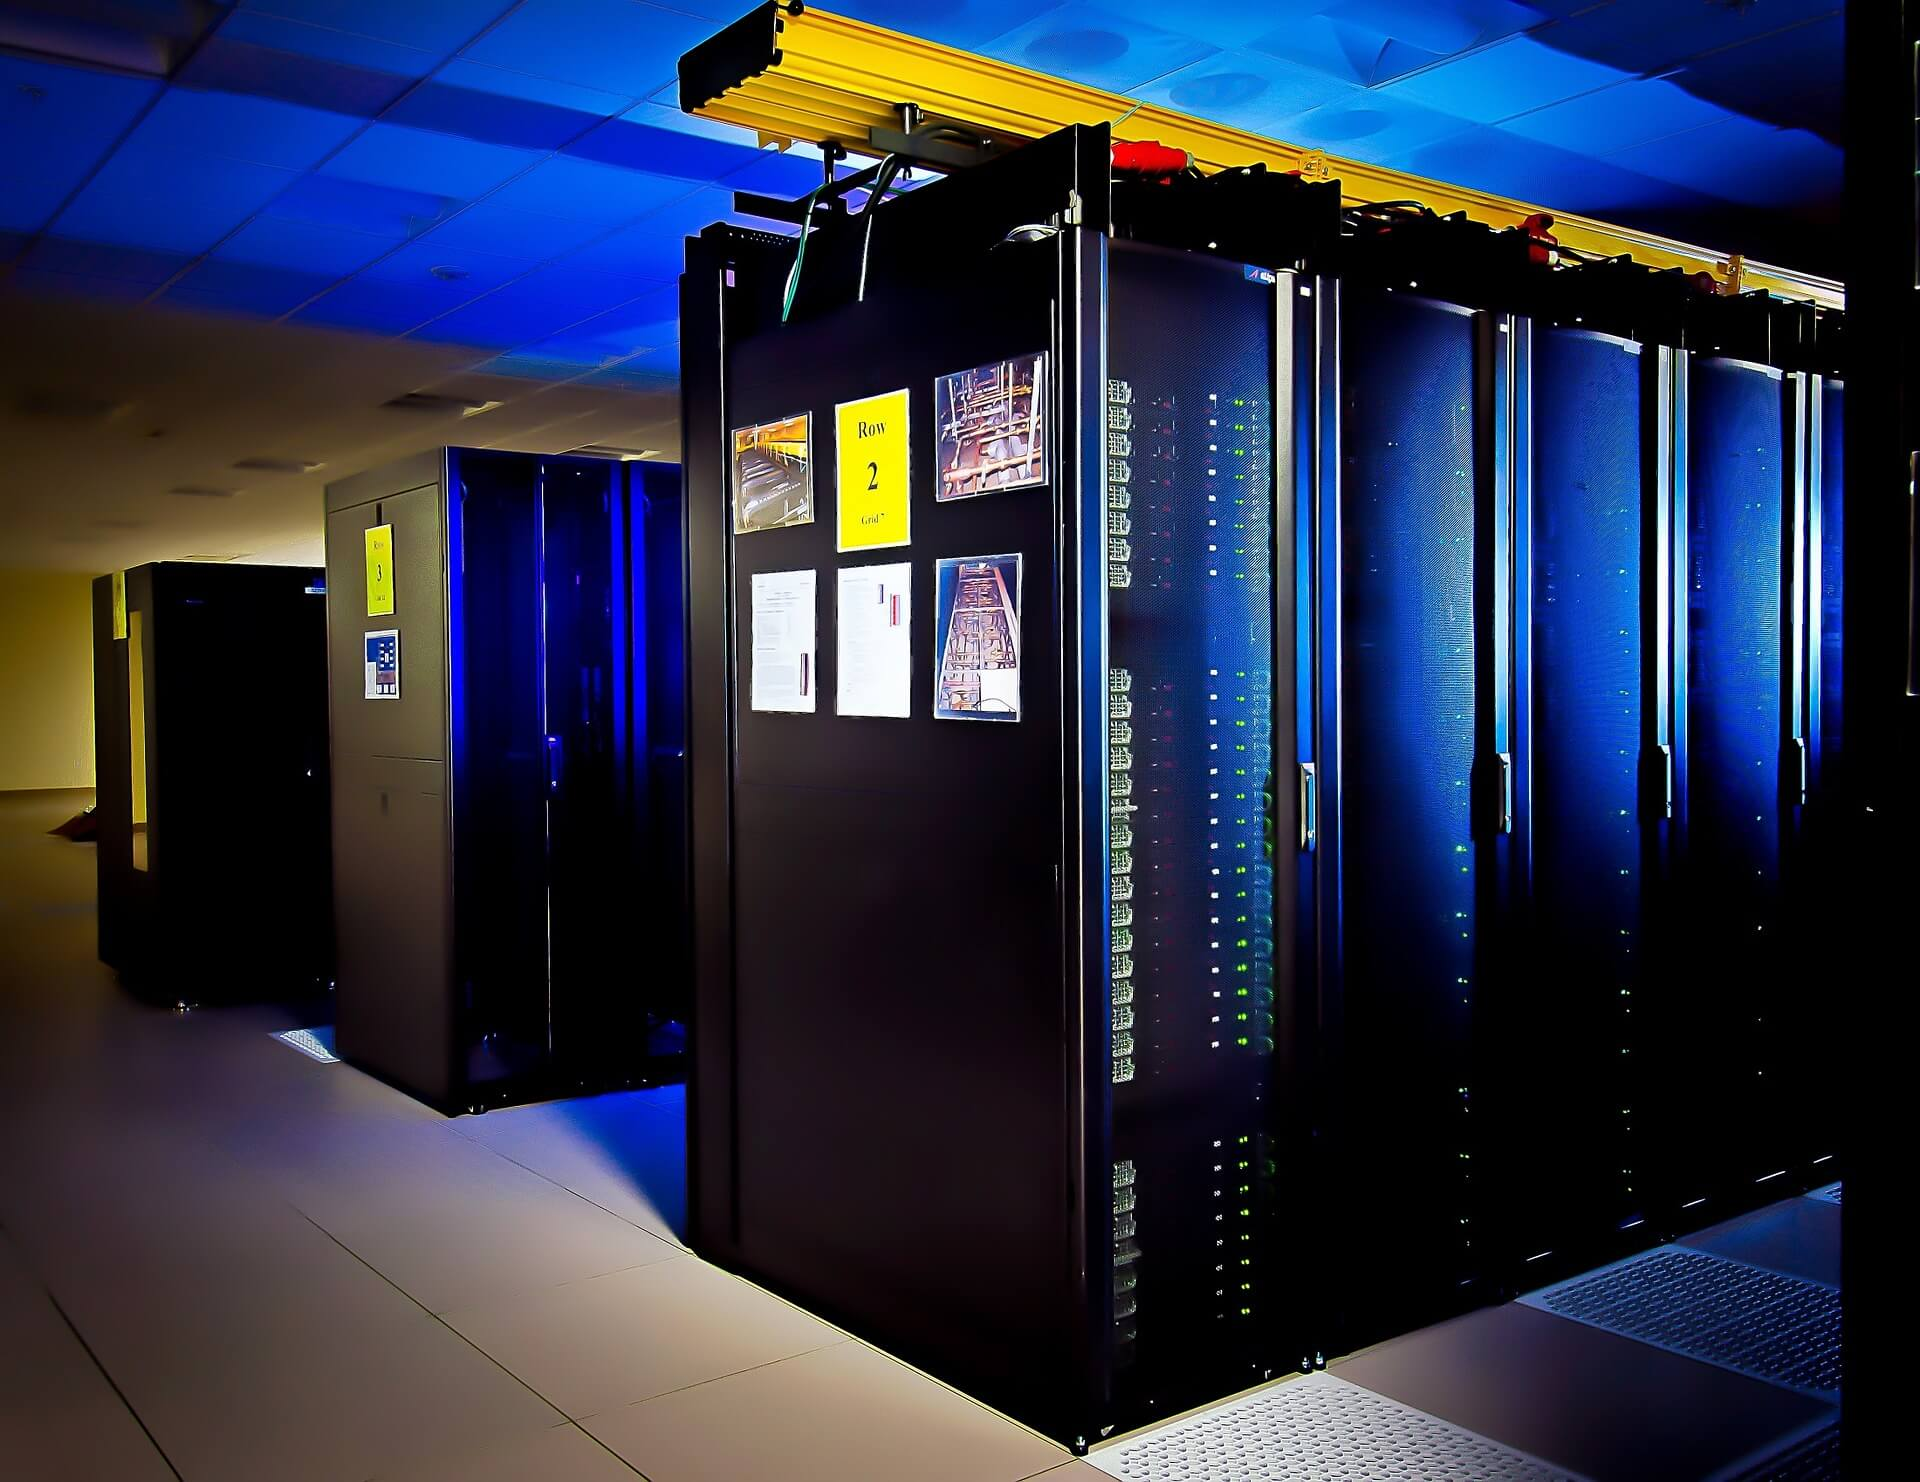 Supercomputers attacked for cryptocurrency mining